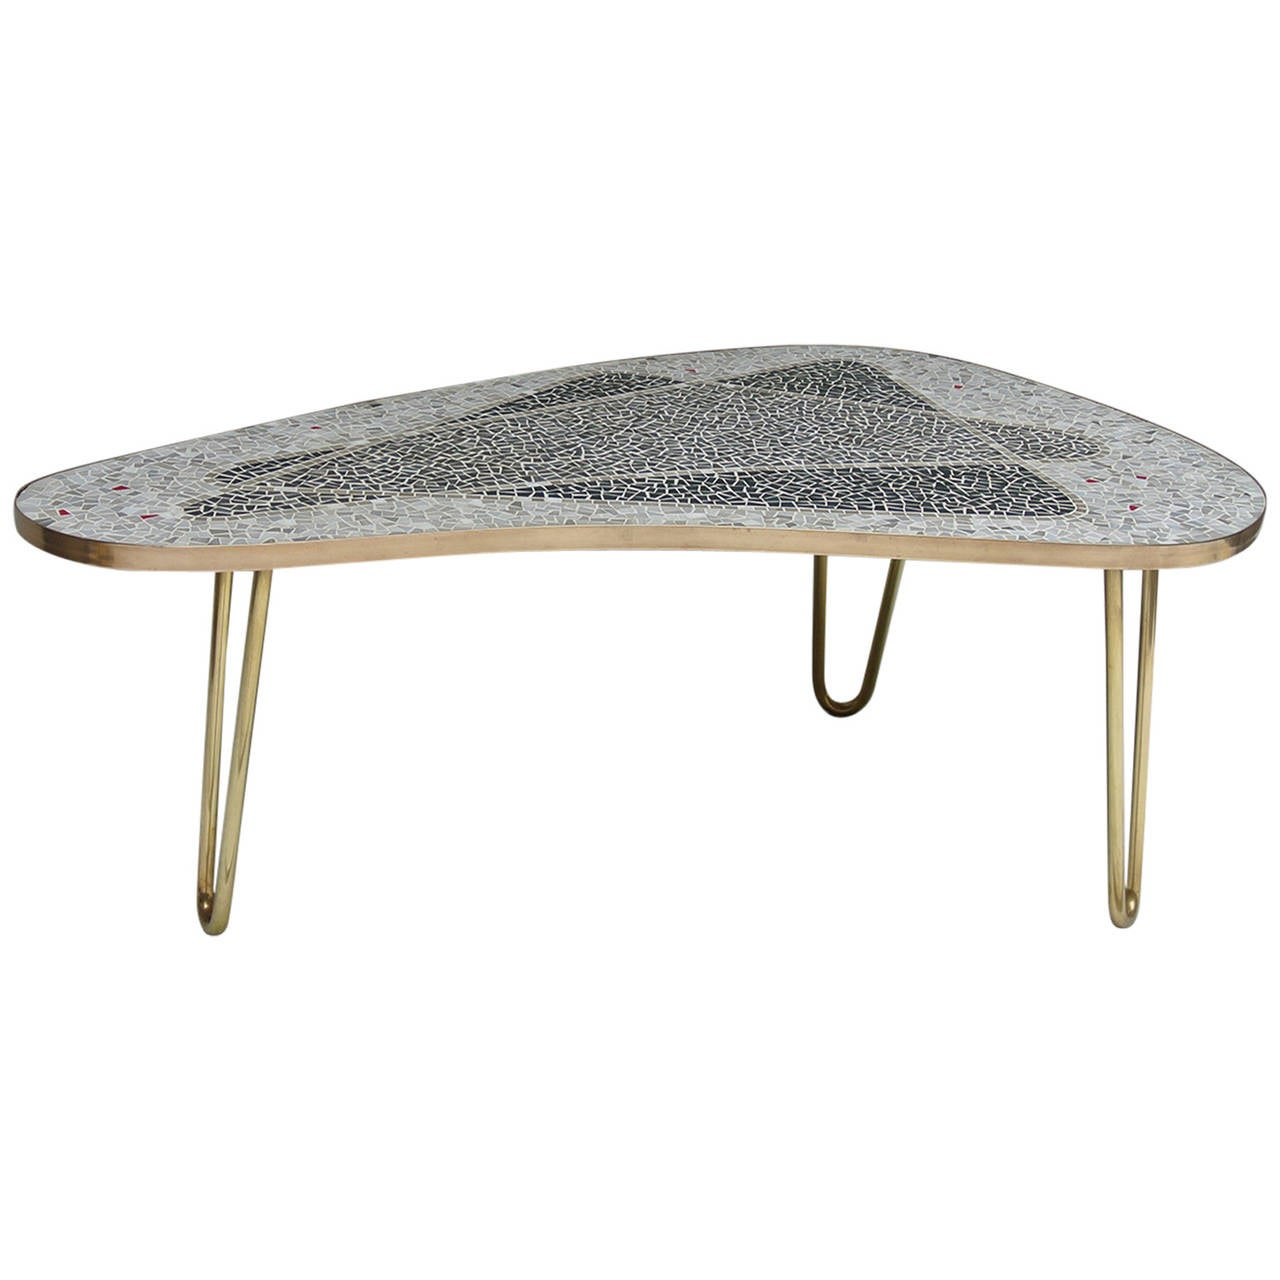 Unique Coffee Table By Joaquim Tenreiro C 1960 For Sale At 1stdibs Unique Coffee Cocktail Table